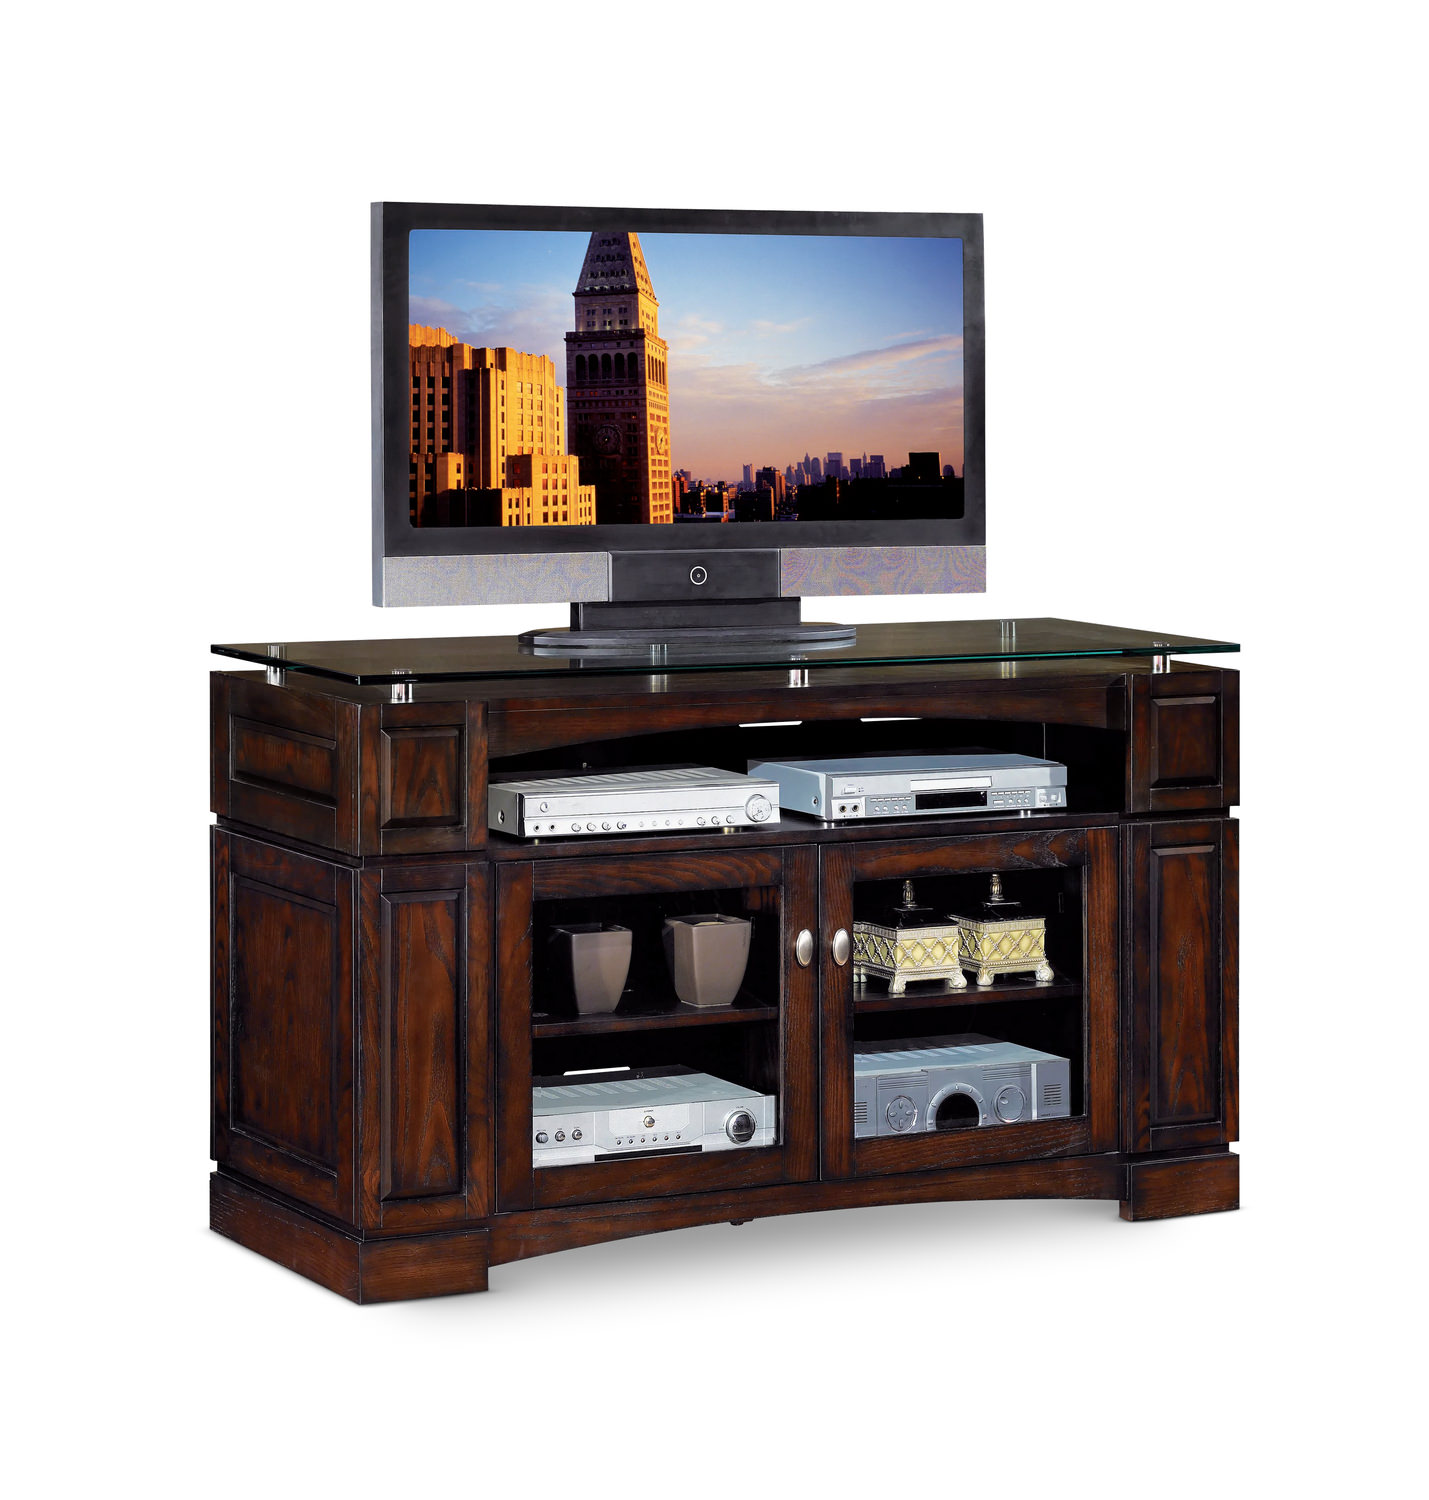 301 moved permanently Modern media console